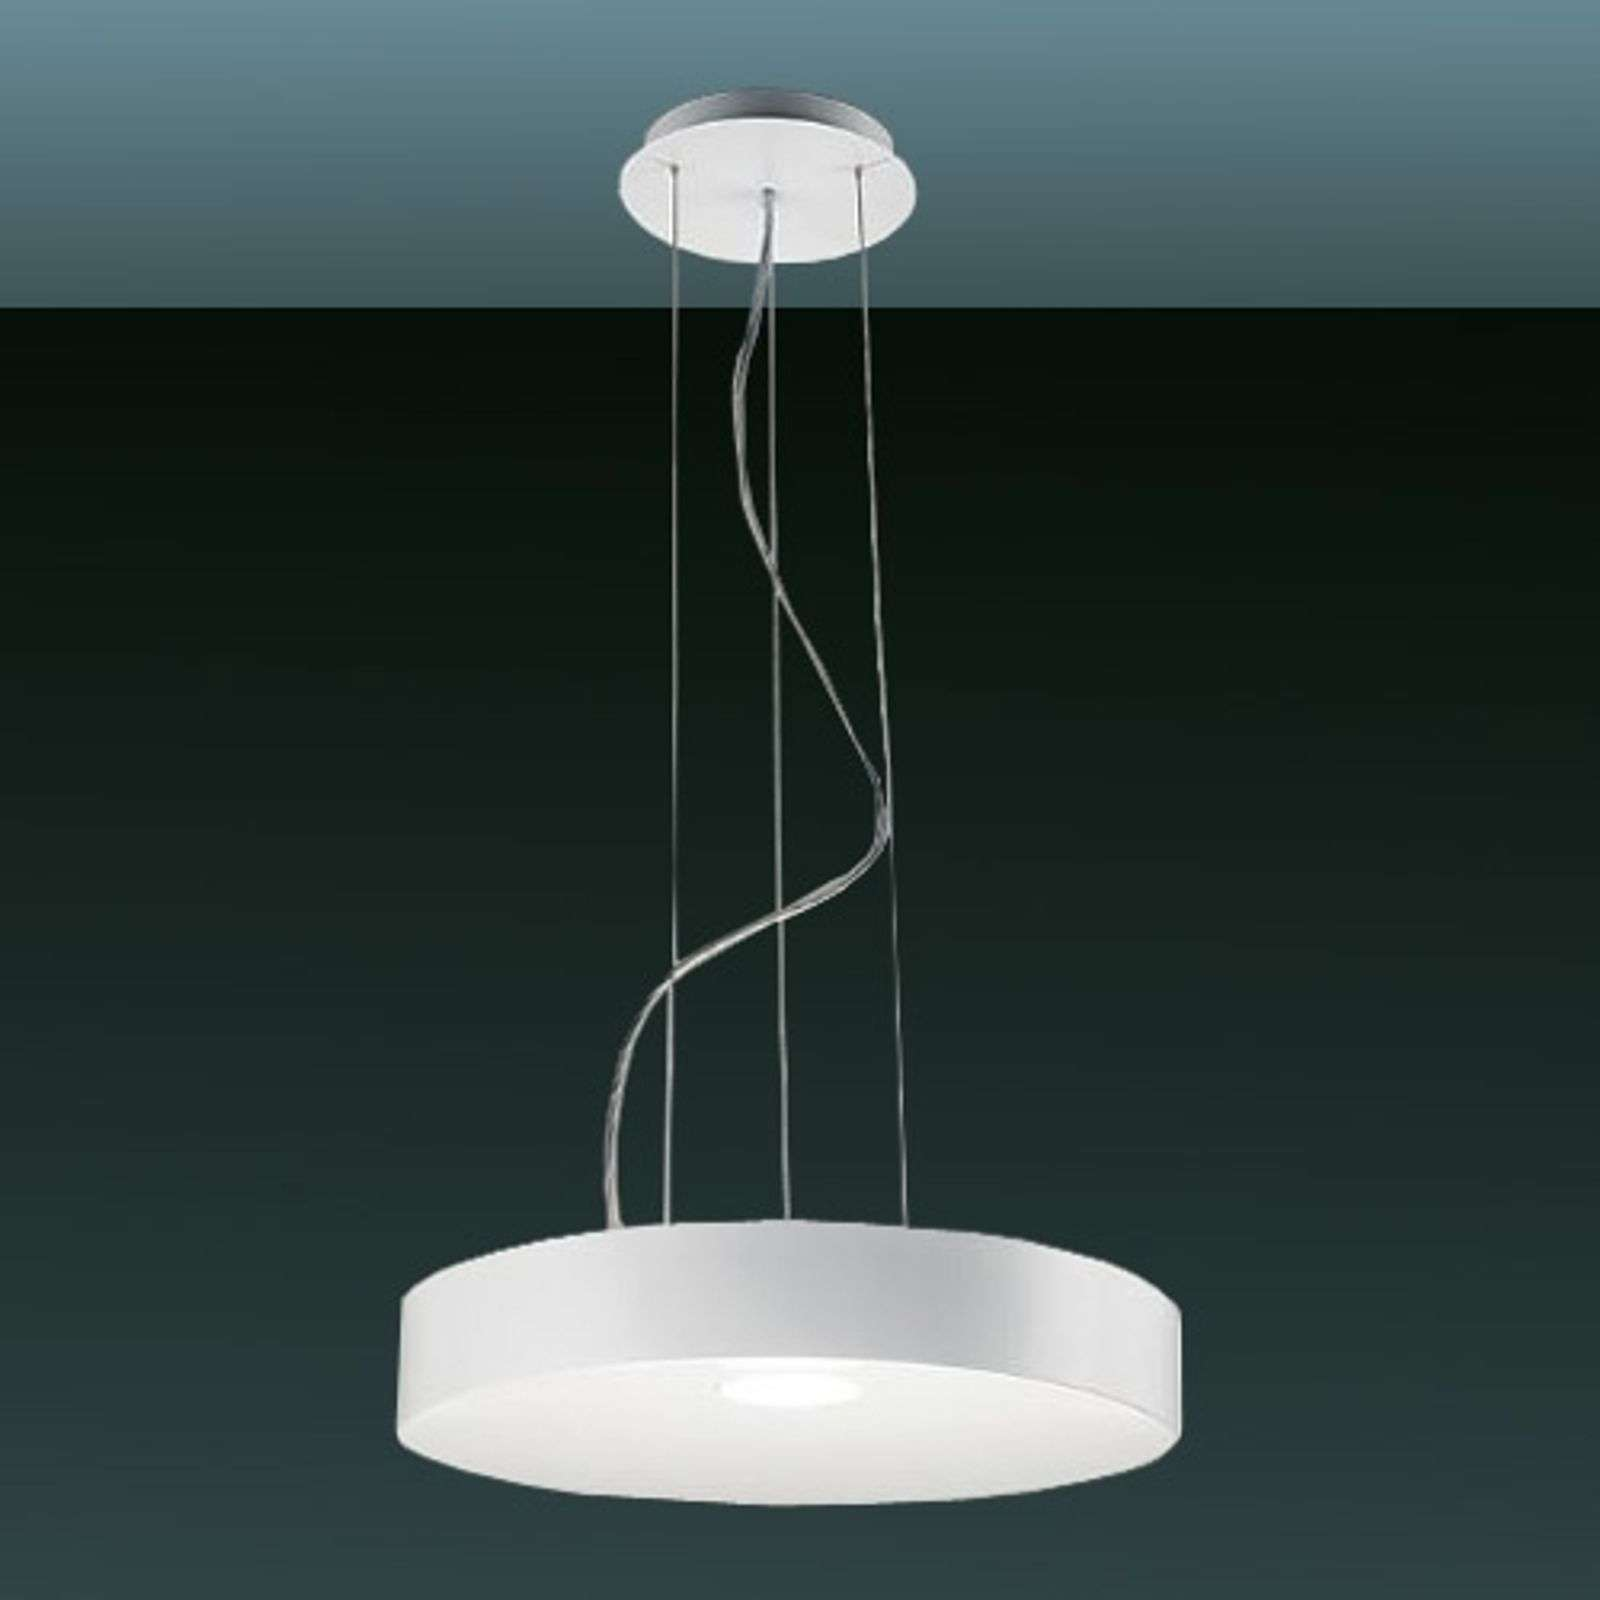 Led-hanglamp CRATER 35W, mat wit